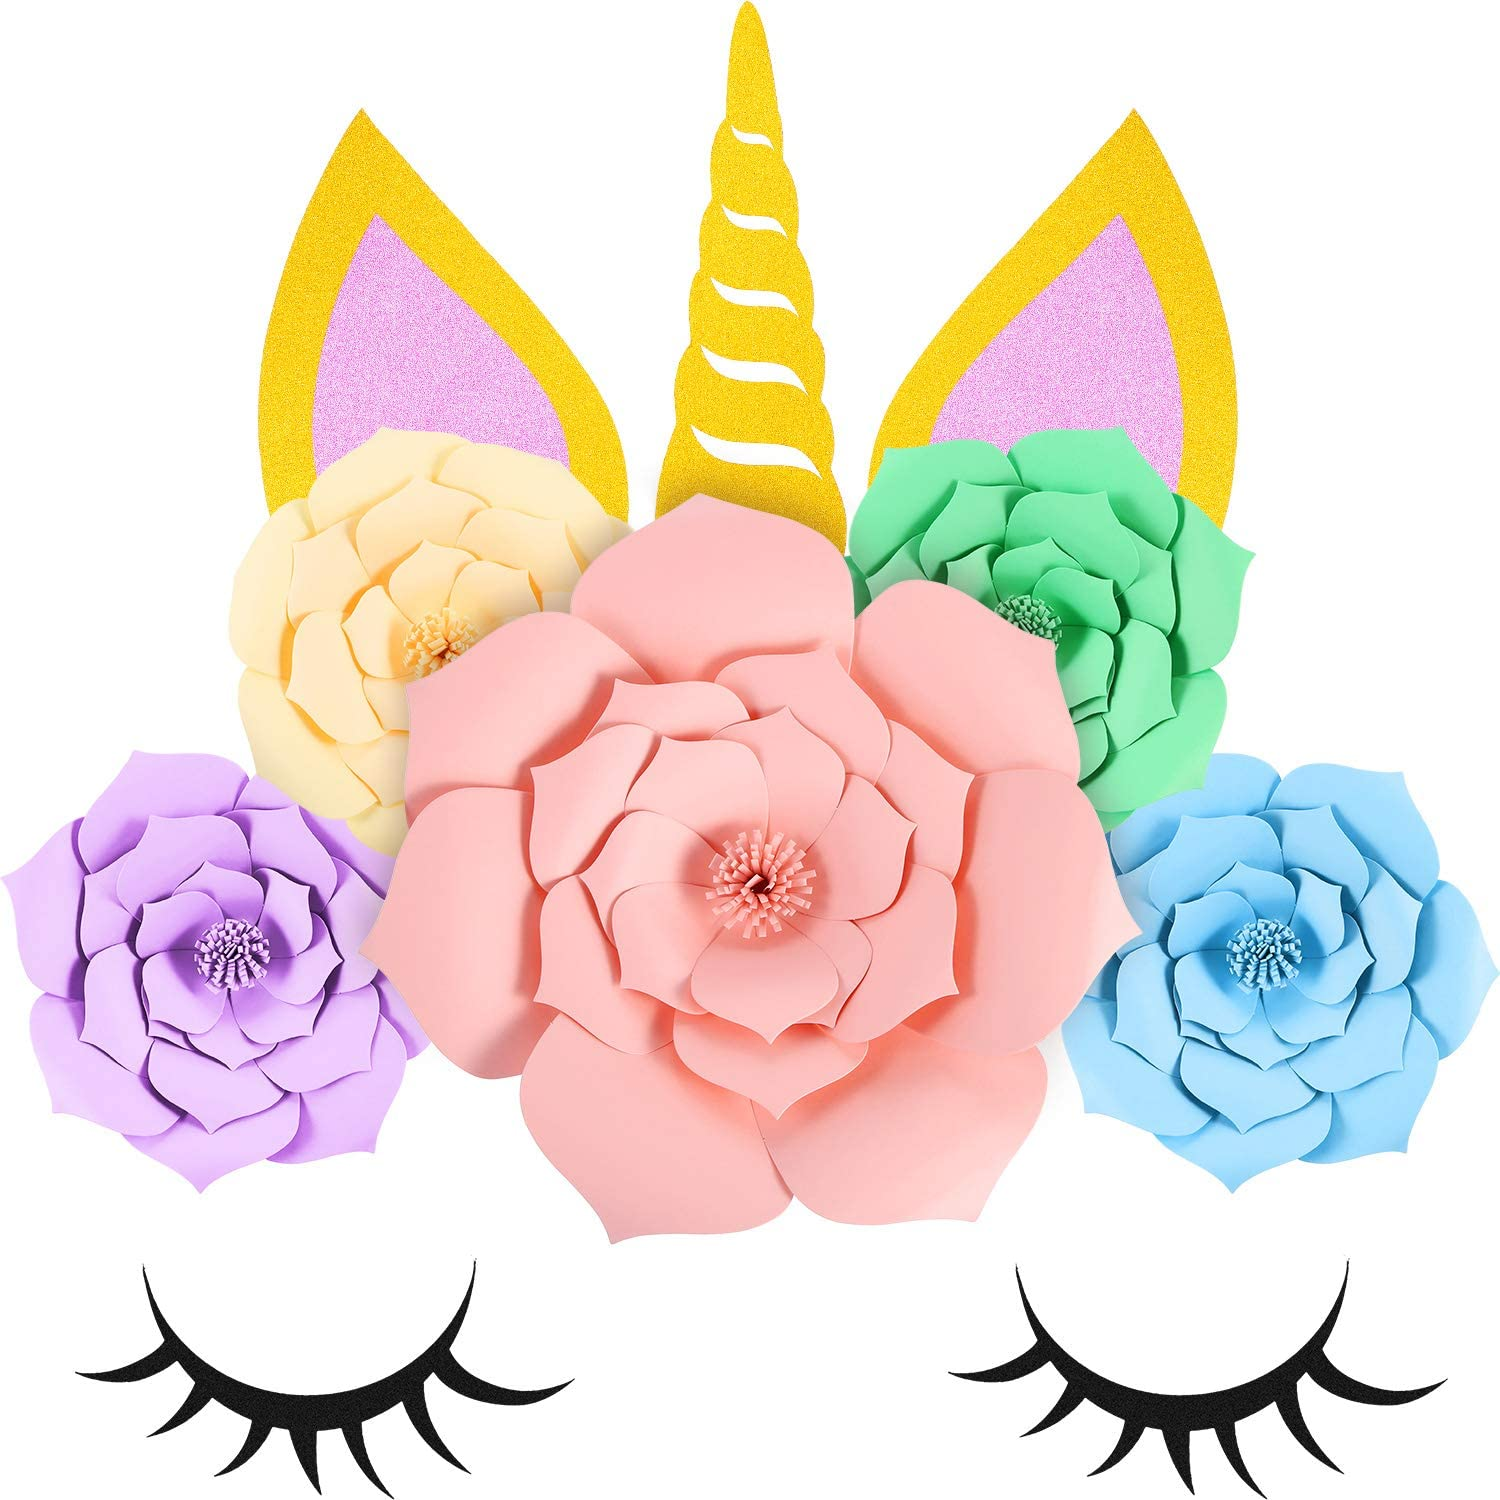 Jetec Unicorn Shape Backdrop Party Favor Paper Flowers Wall Decor with Glitter Large Horn Ear Eyelashes for Girl Birthday Wedding Party Baby Shower